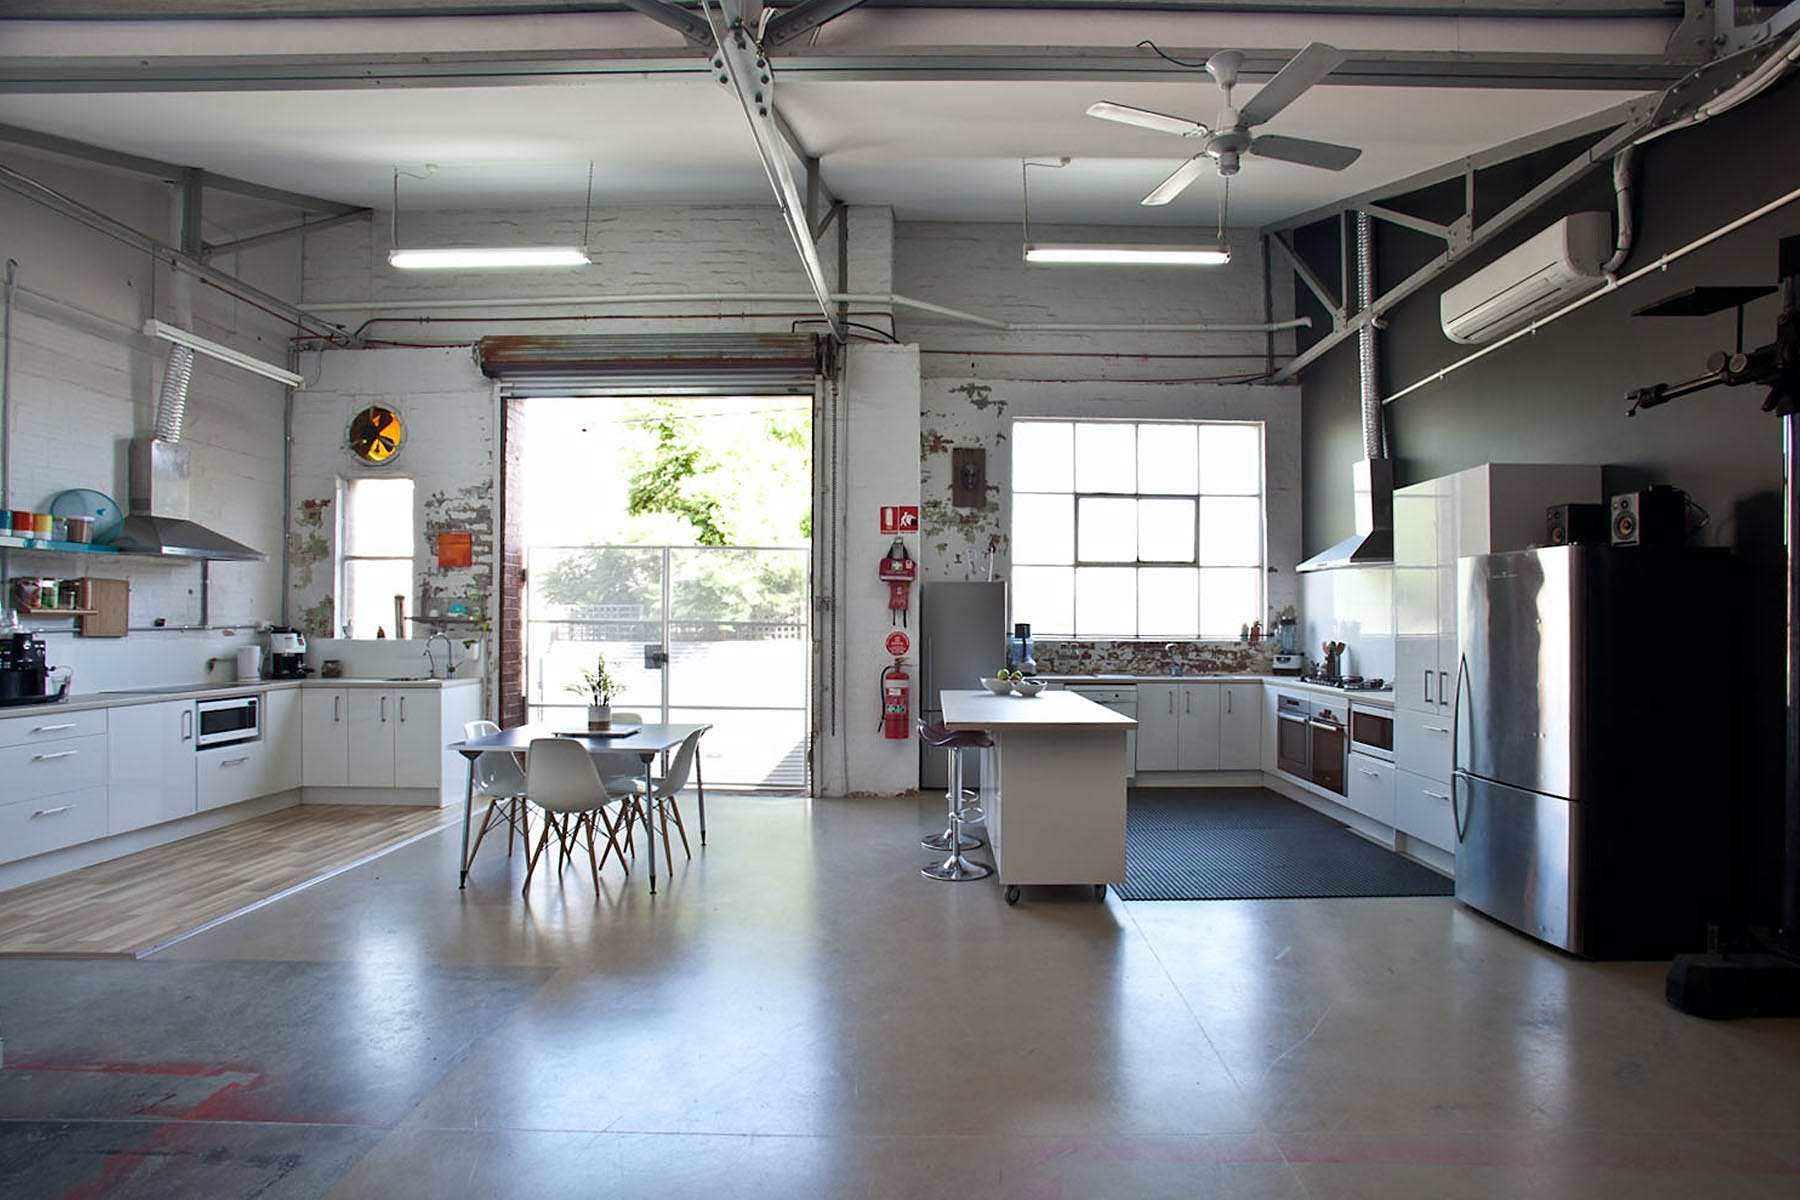 Food Studio, creative studio at 19 Ireland Street, image 1